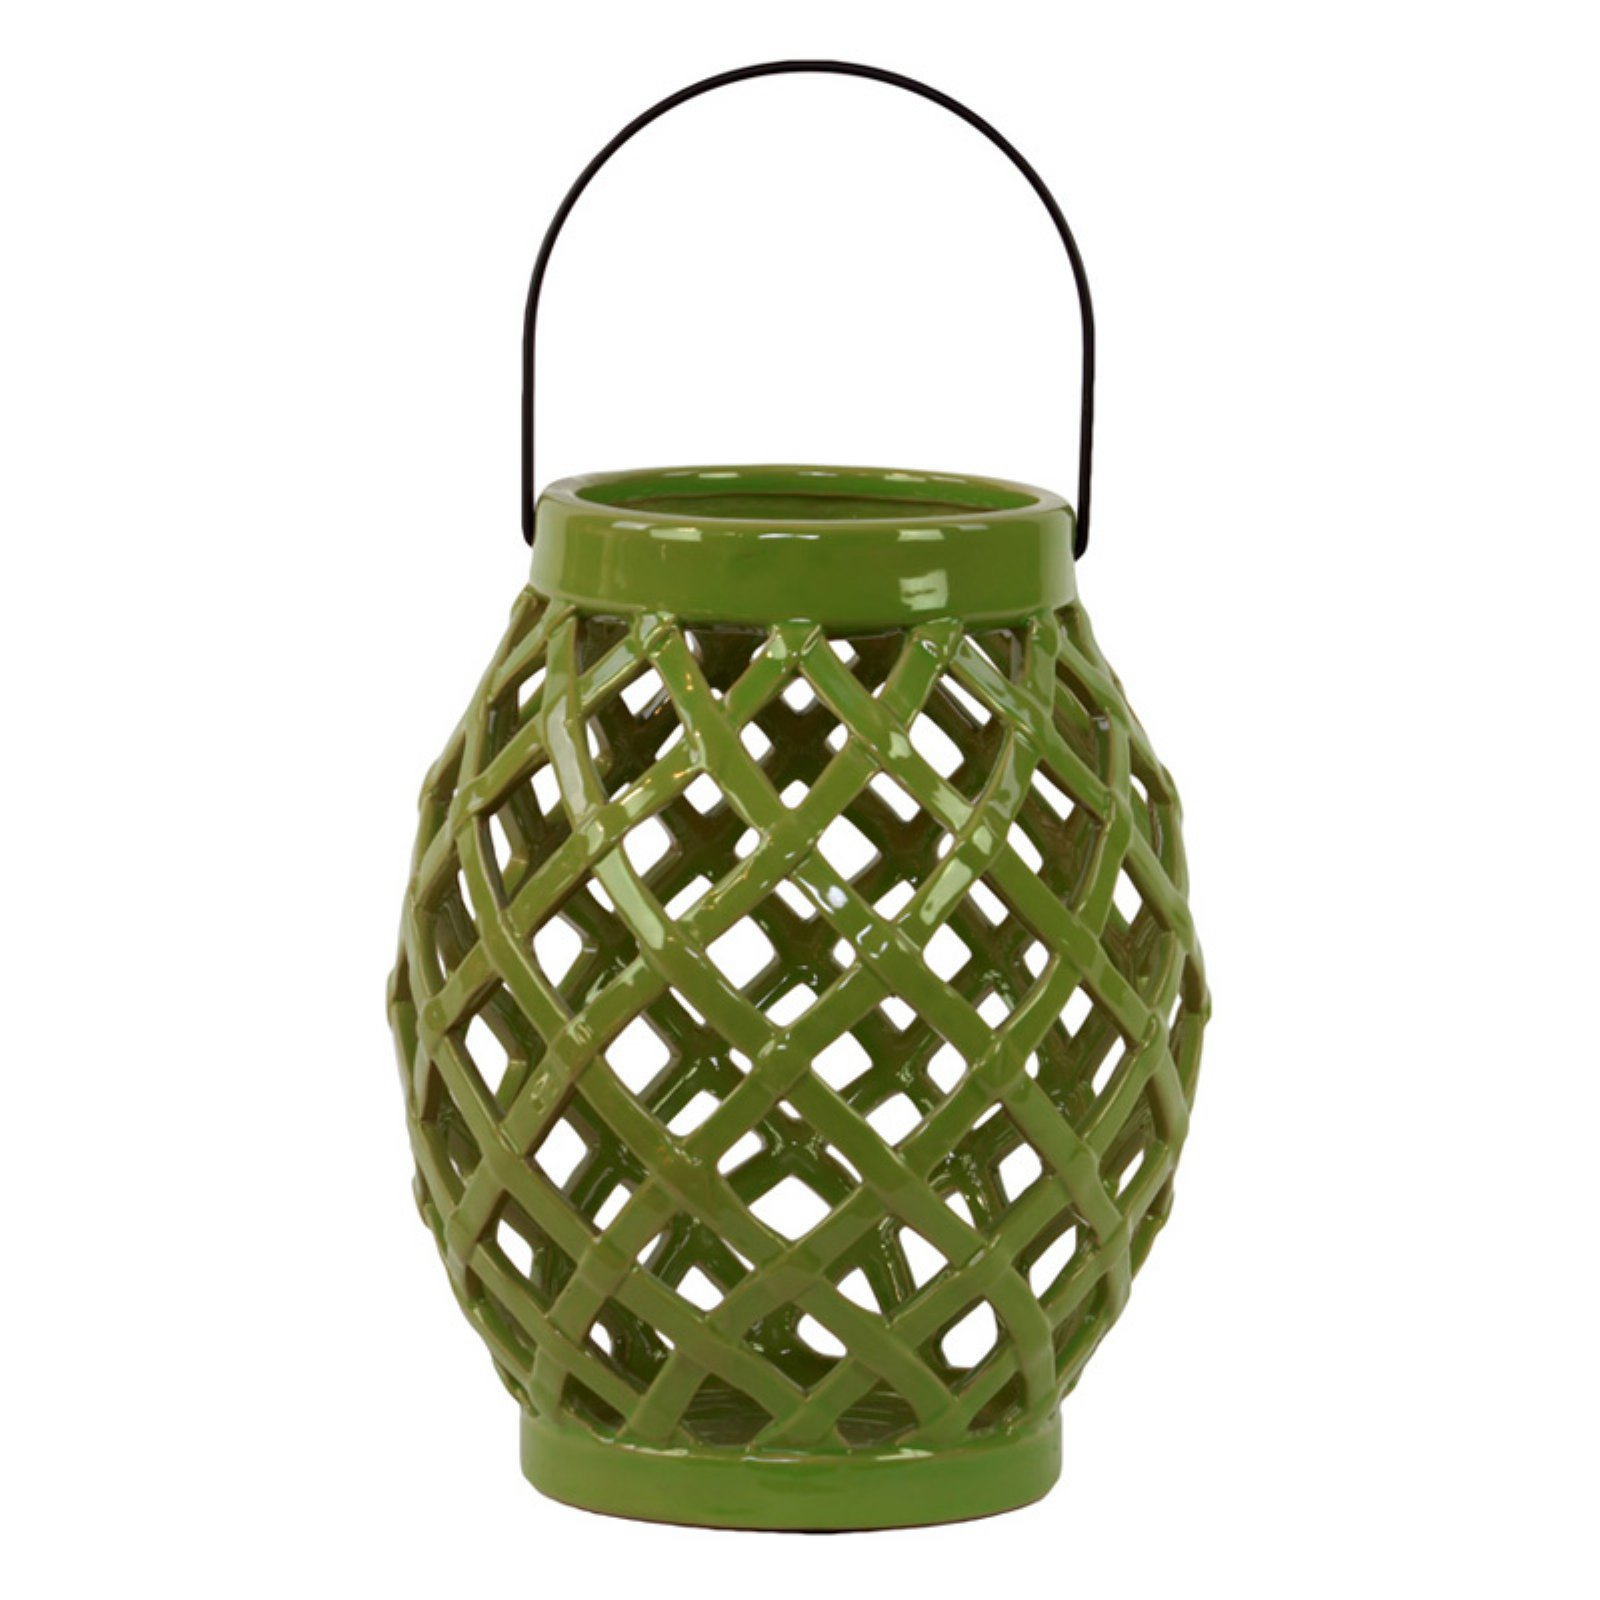 Urban Trends Collection: Ceramic Hand Lantern, Gloss Finish, White